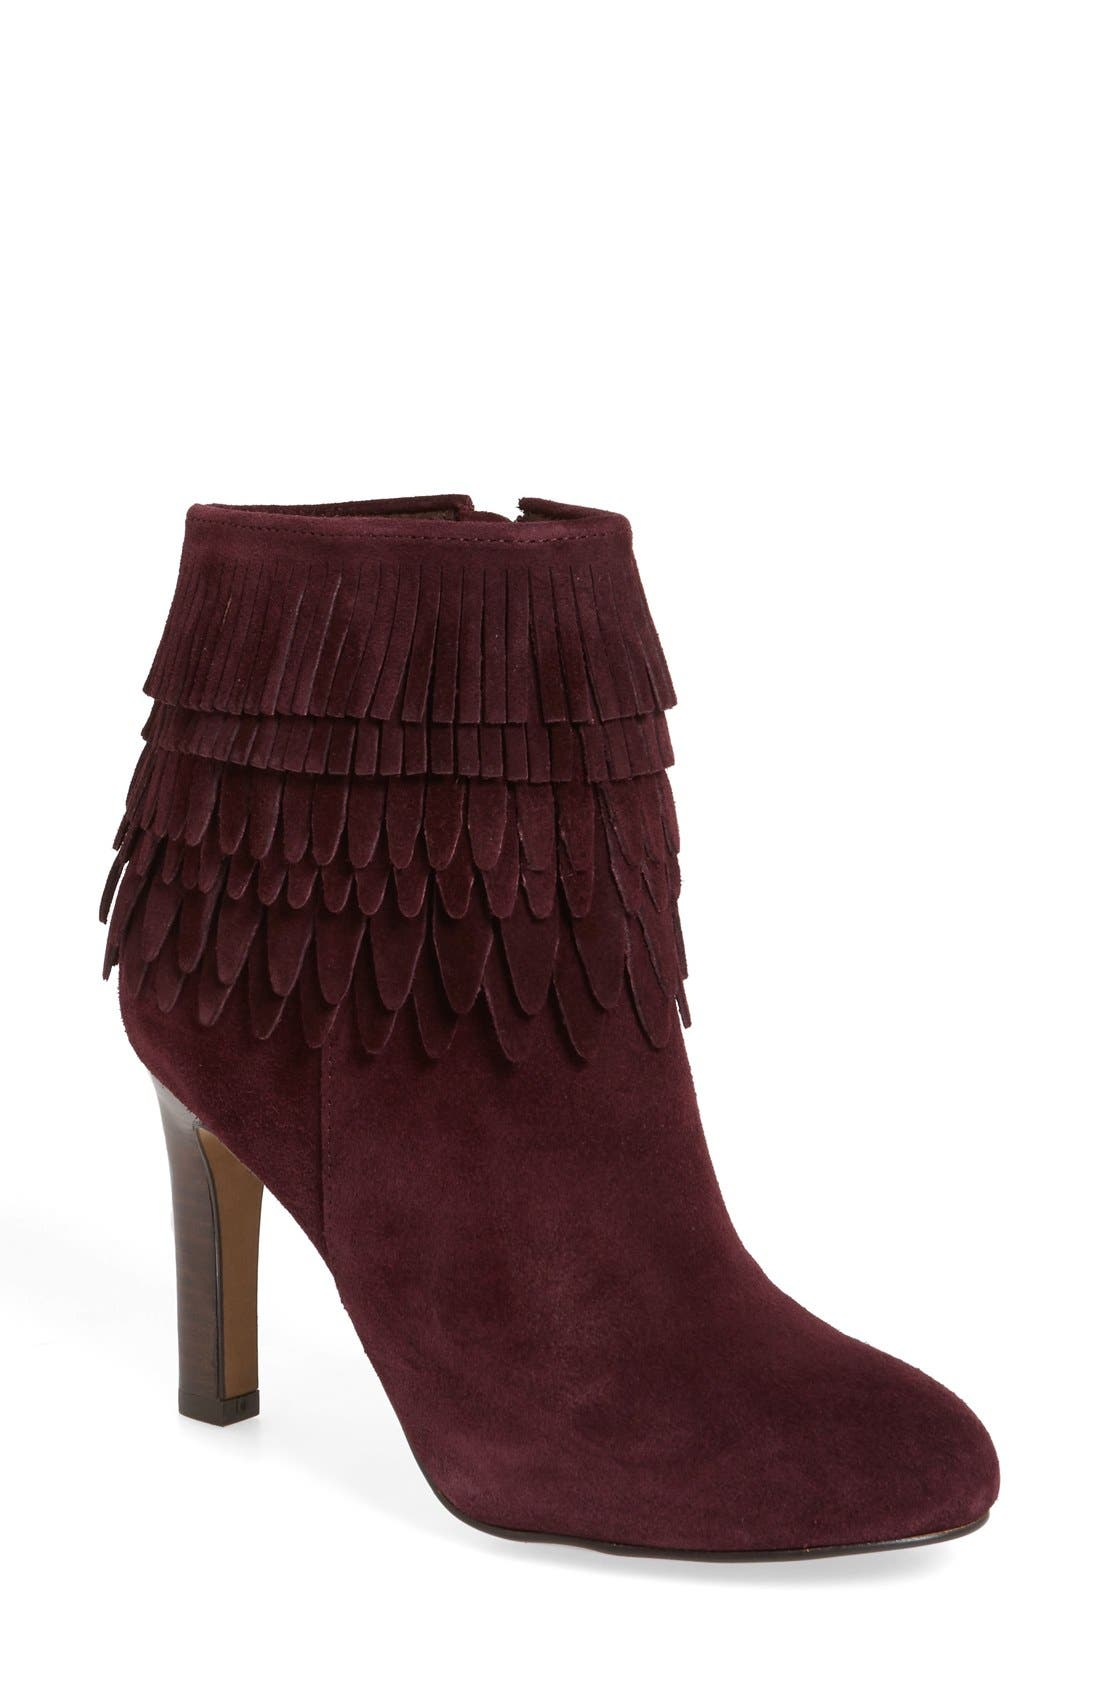 Alternate Image 1 Selected - Isolá 'Layton' Fringe Bootie (Women)